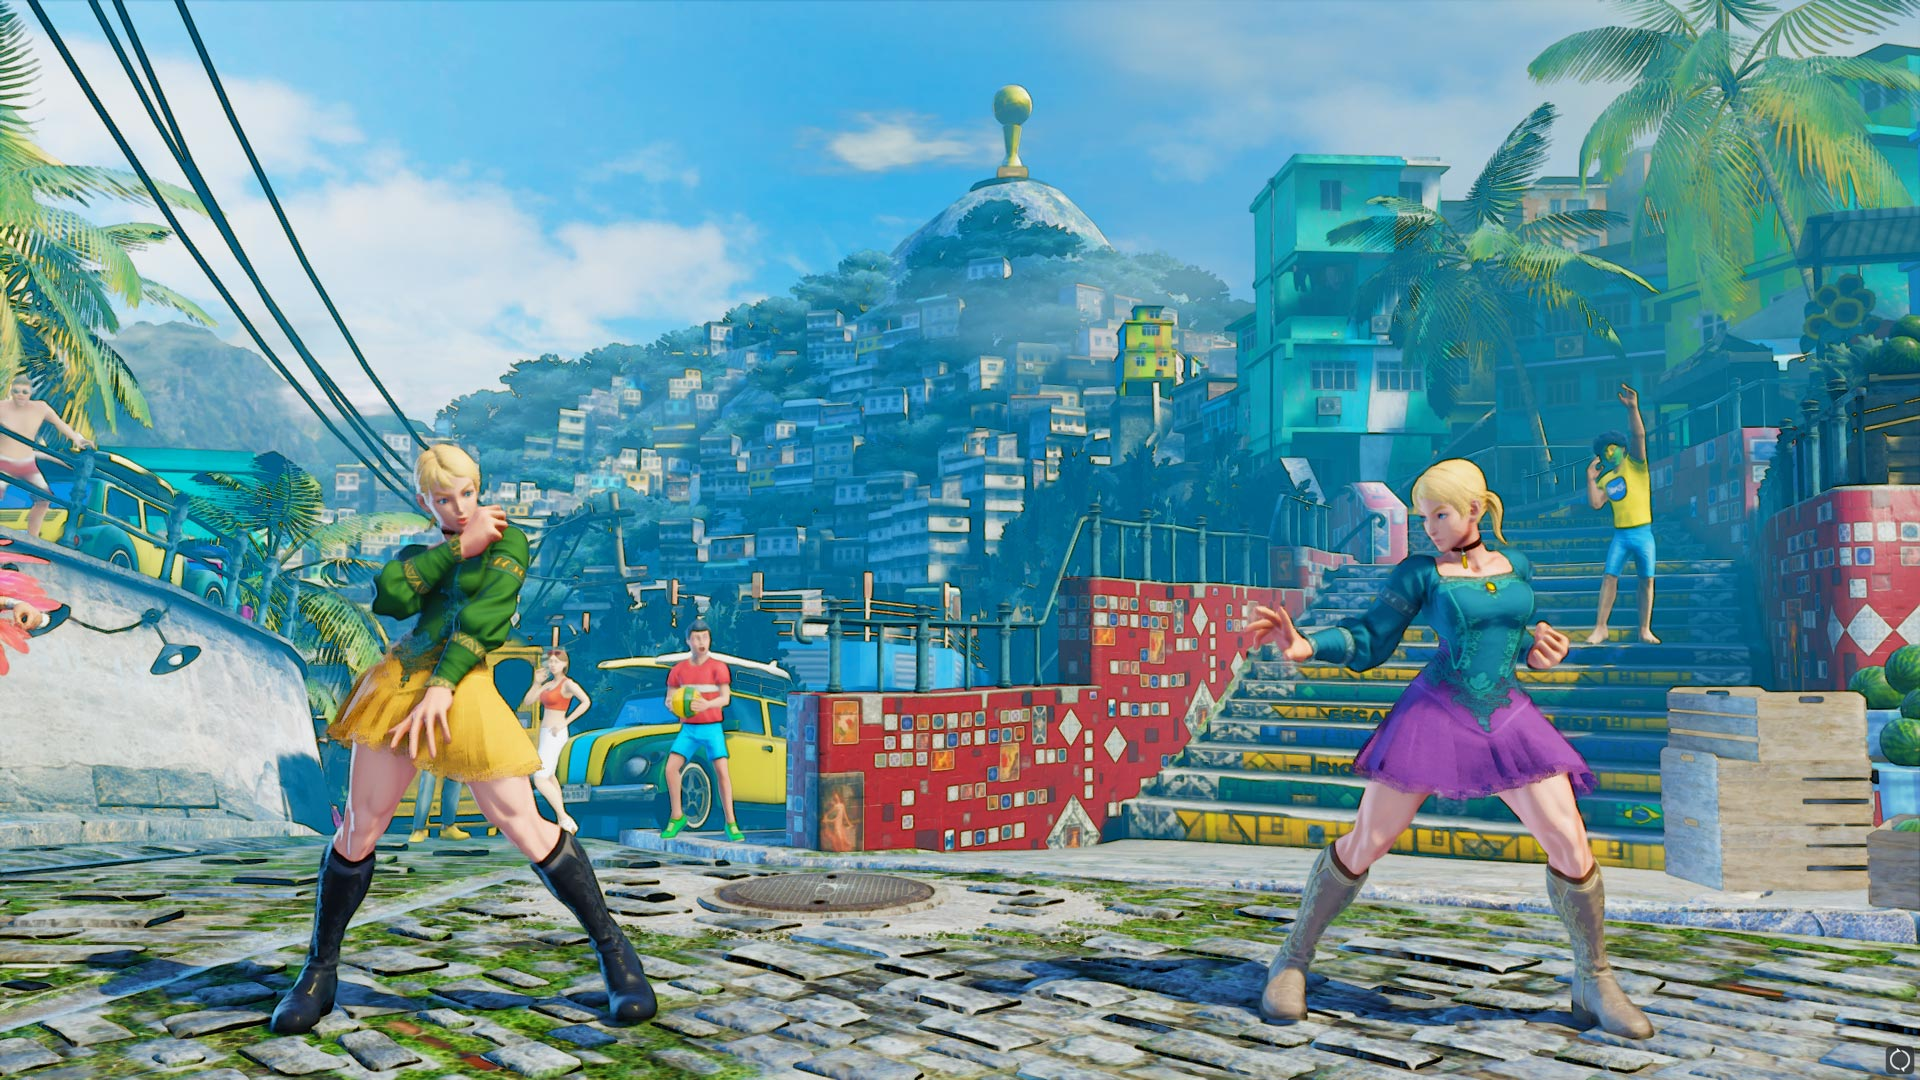 Cammy's Fiona costume colors 3 out of 6 image gallery